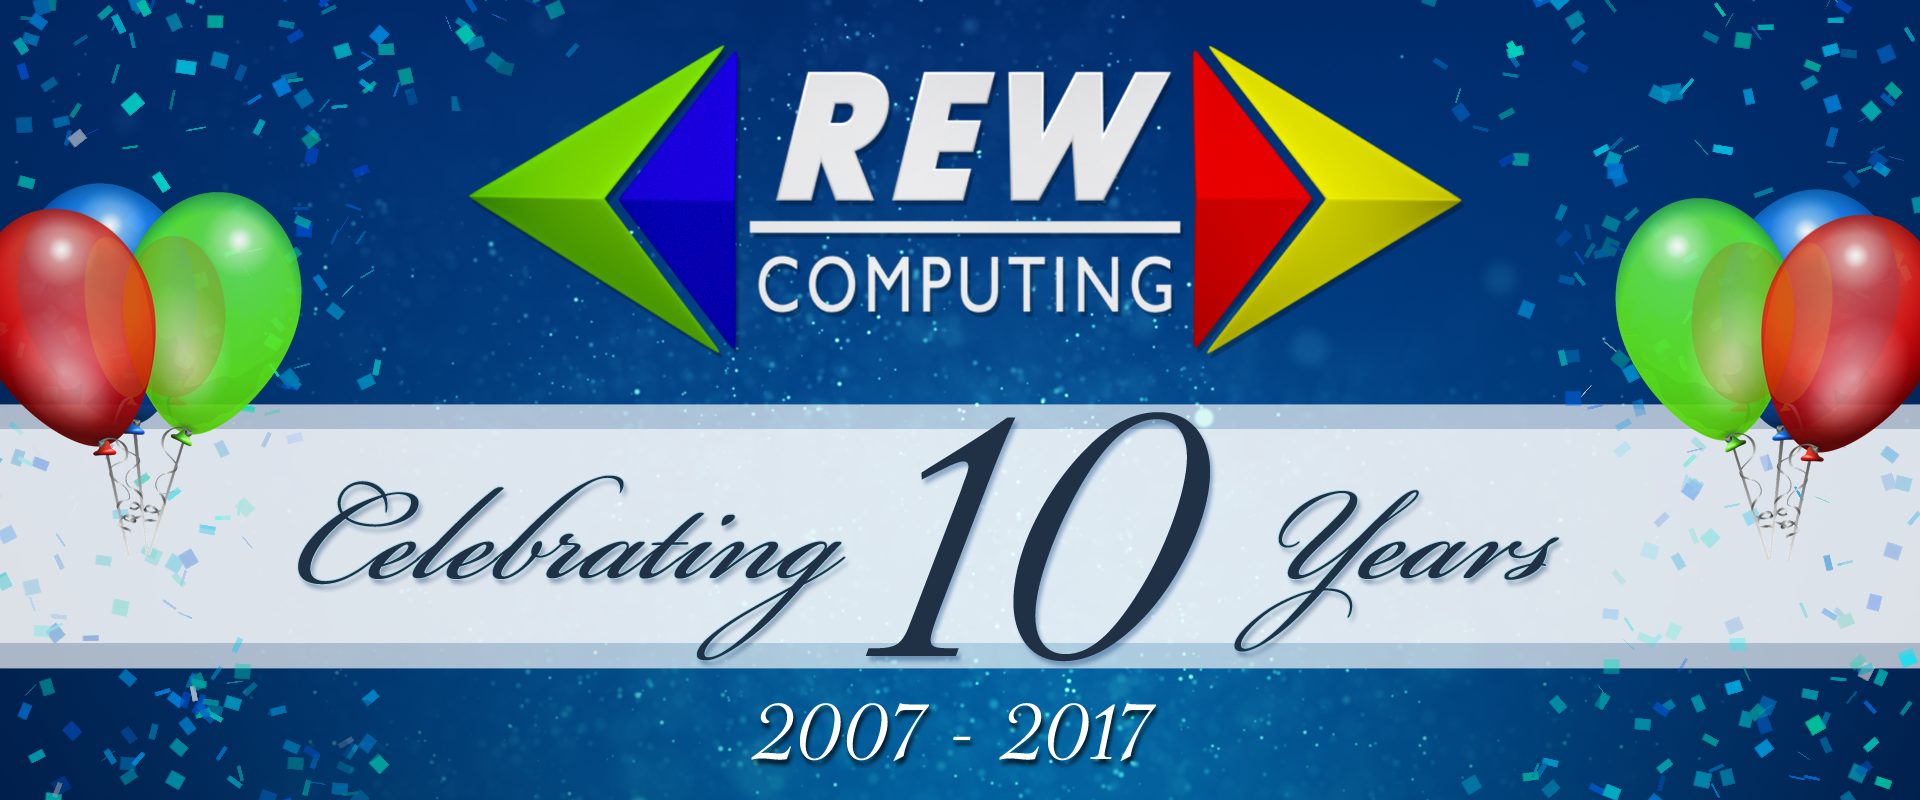 REW Computing celebrating 10 years as an incorporated entity (2007 - 2017)